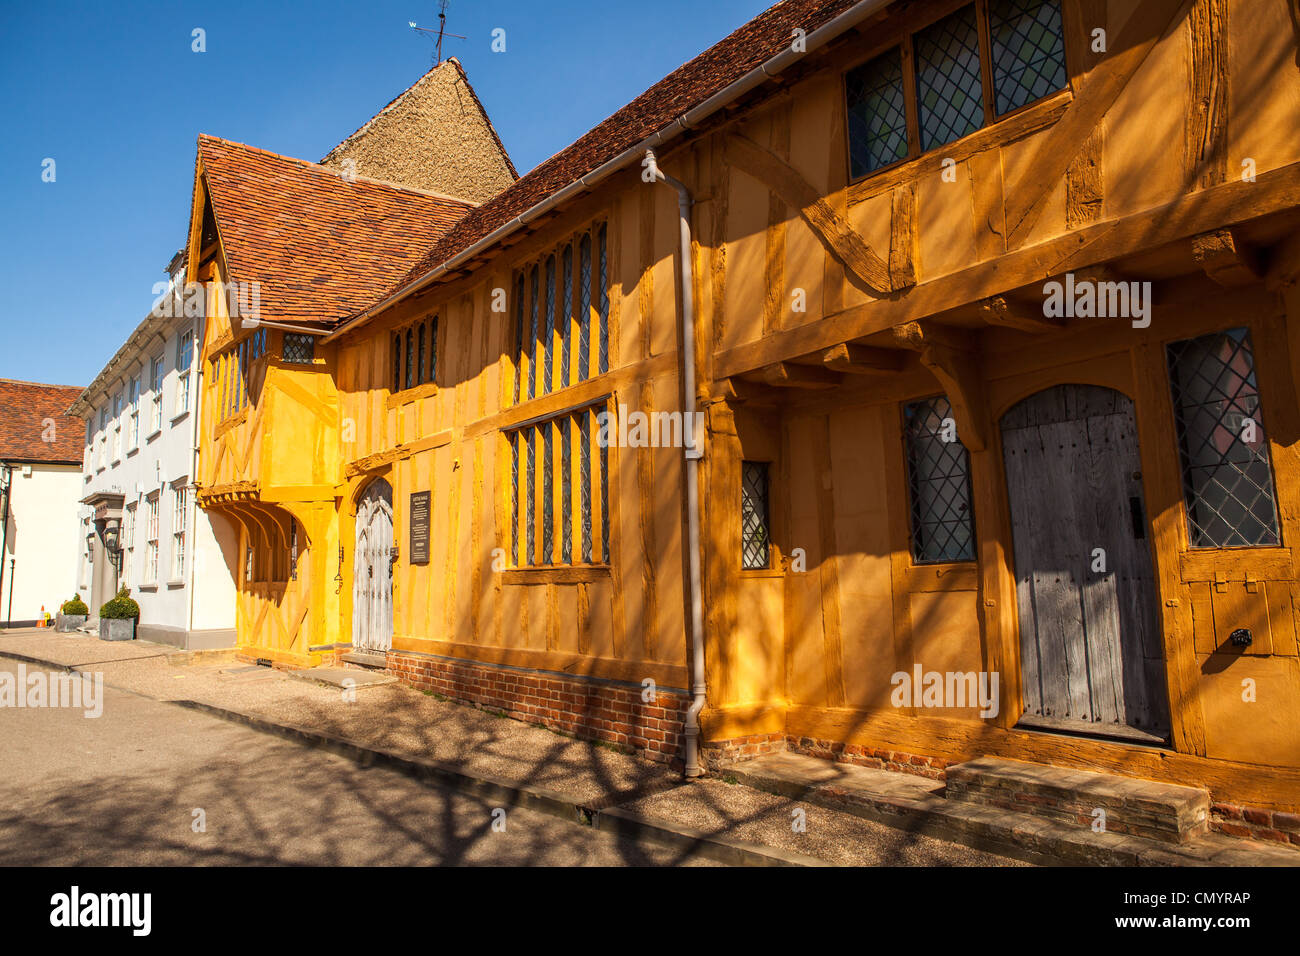 Little Hall, a mustard yellow coloured medieval Tudor building in Lavenham, Suffolk - Stock Image